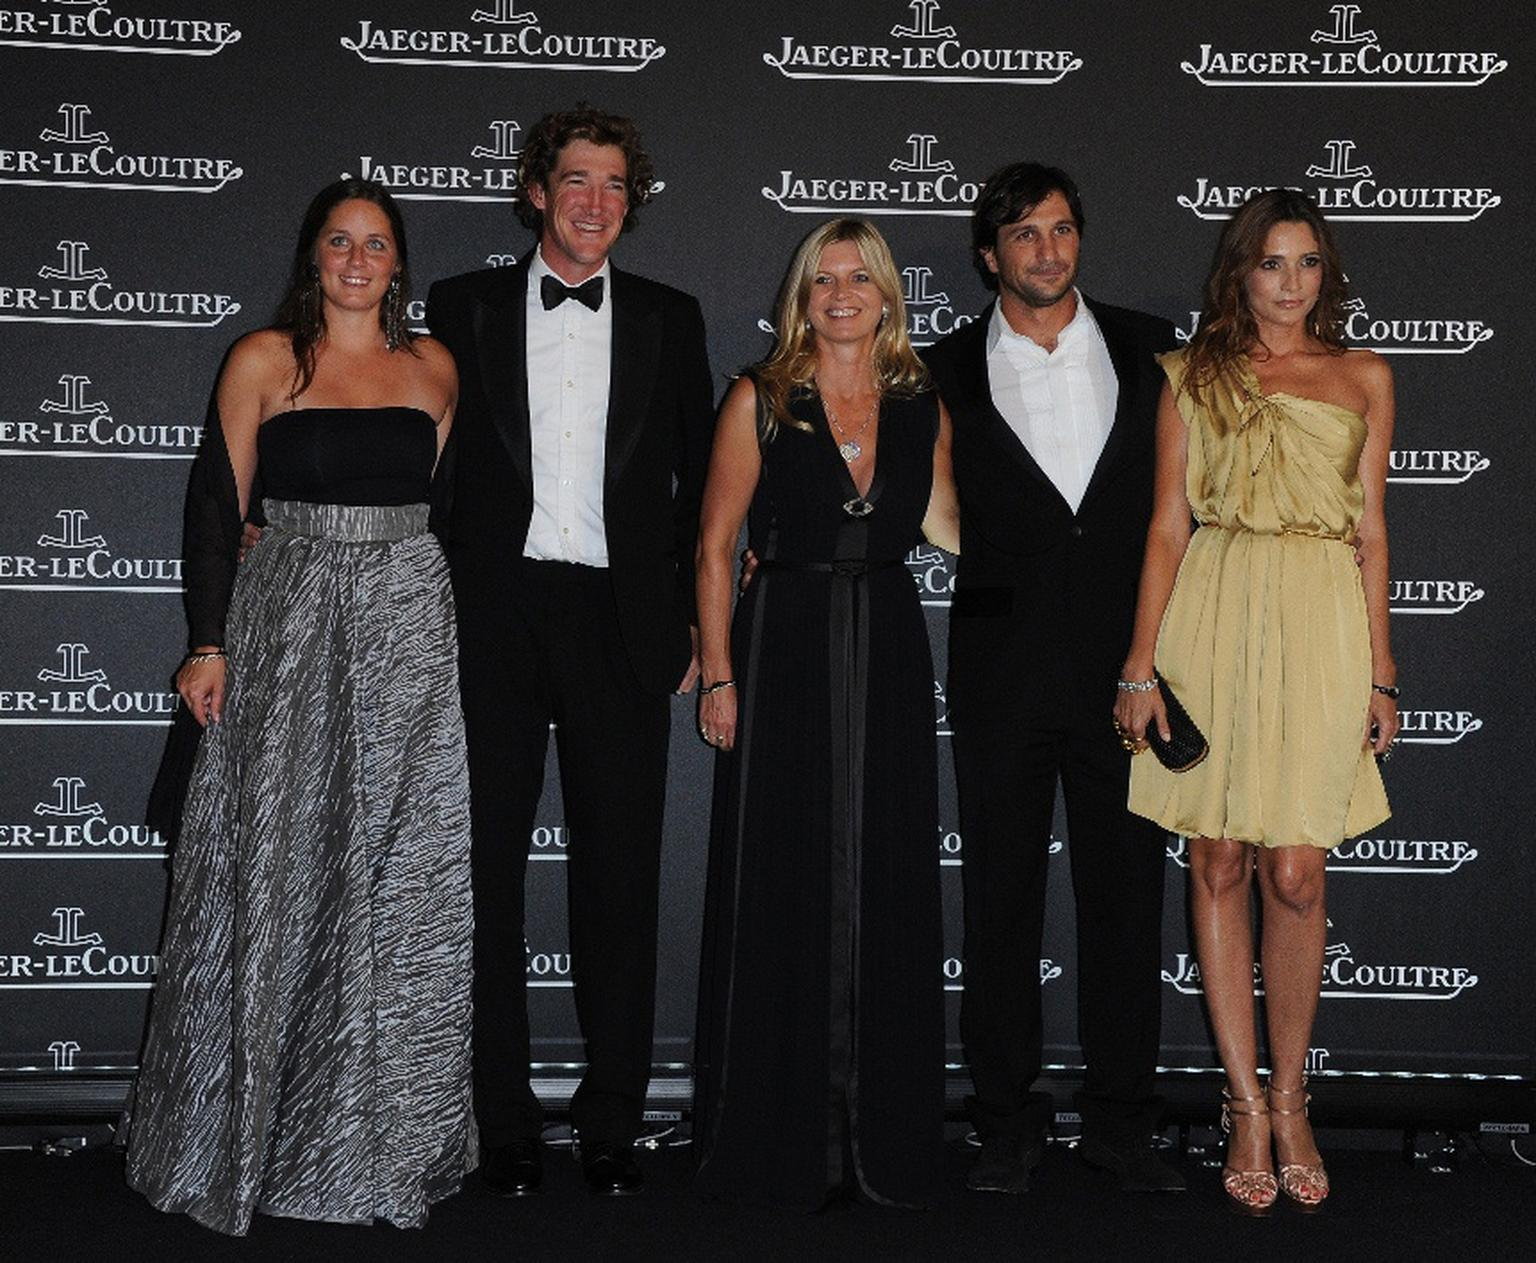 JLC-Luke-Tomlinson-with-his-fiancee marchioness-of-Milford-Haven-Eduardo-Novillo-Astrada-and-Astrid-Munoz-at-Jaeger-LeCoultre-Rendez-Vous-in-Venice.jpg